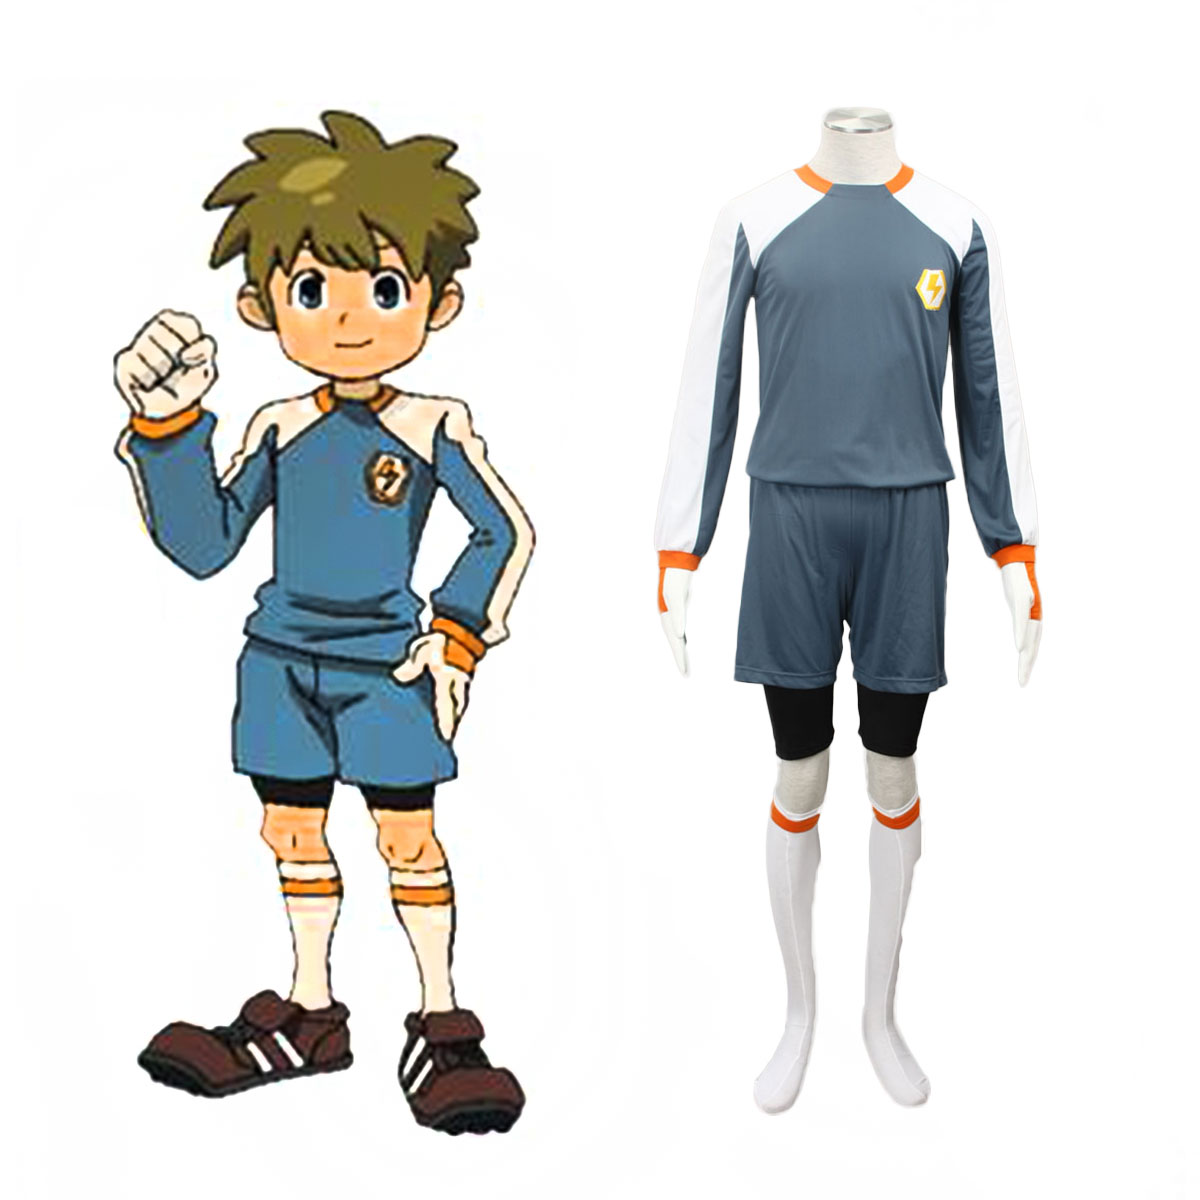 Inazuma Eleven Raimon Goalkeeper Soccer Jersey 2 Cosplay Costumes AU